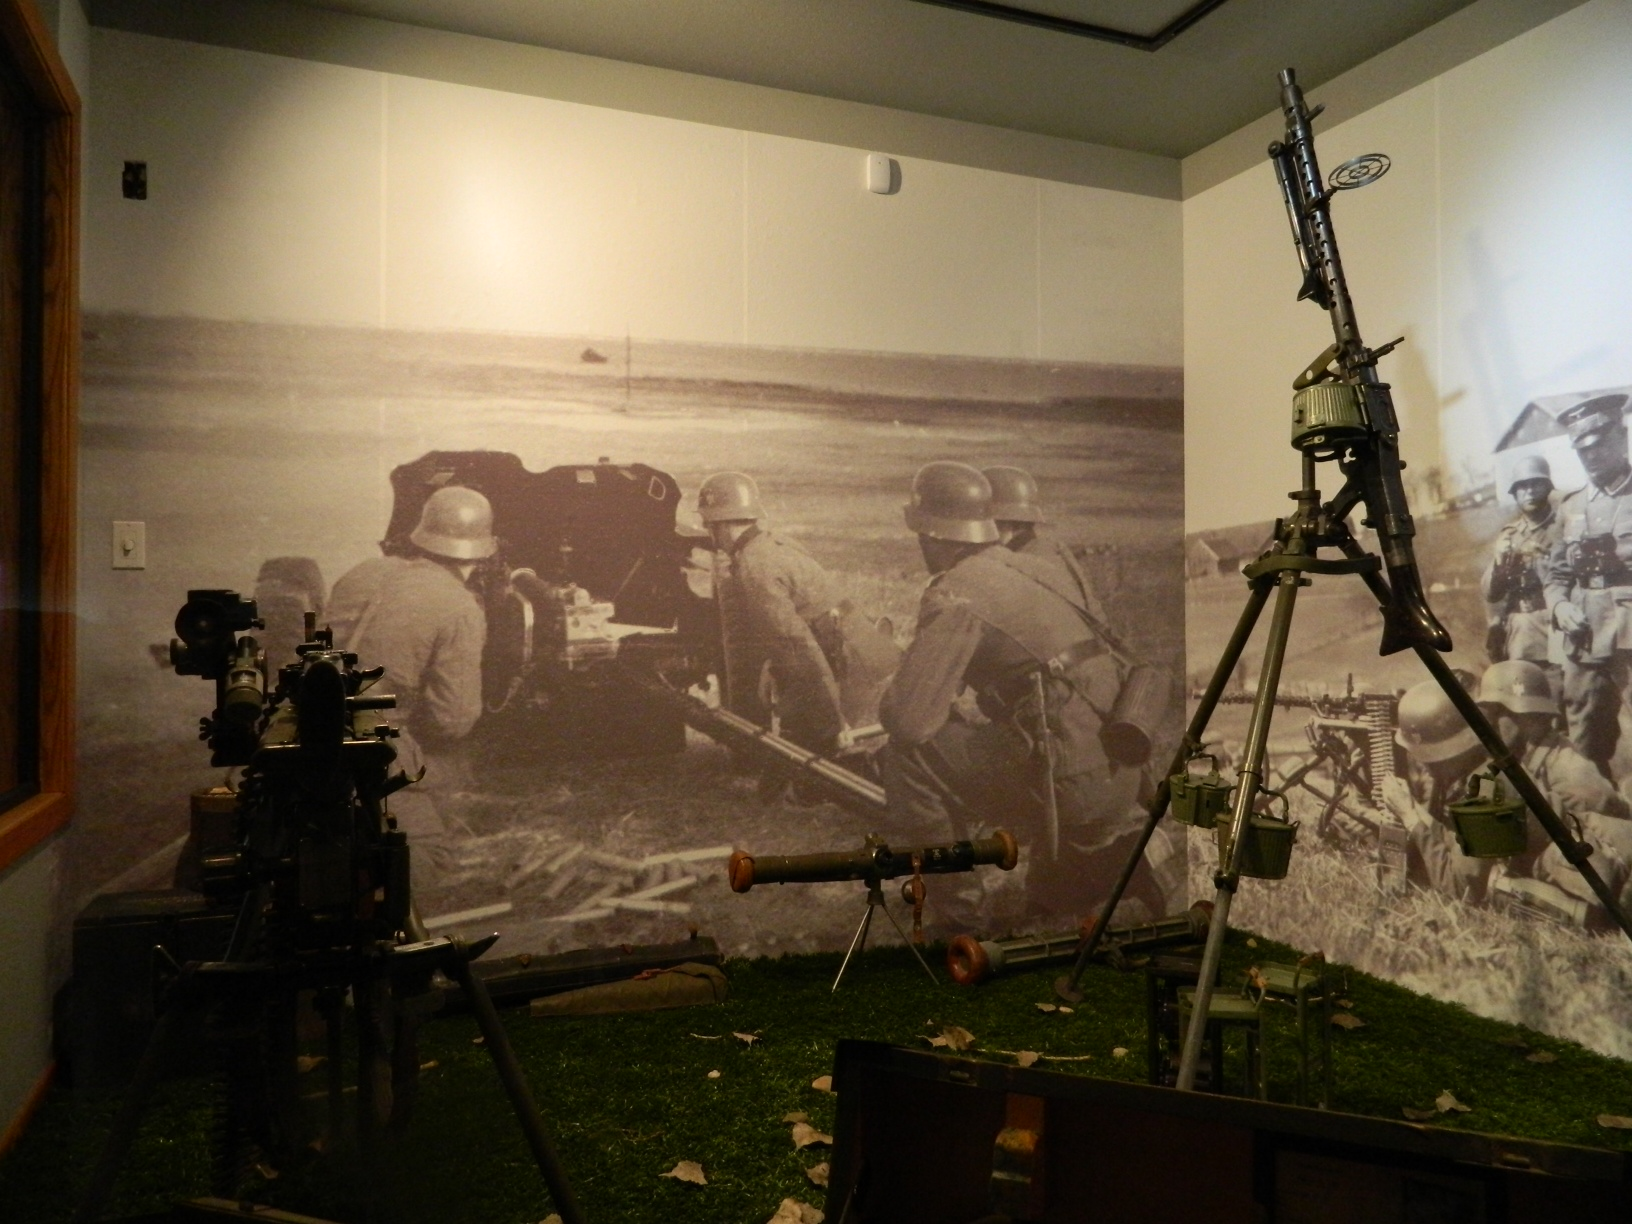 Inkjet Printed Wall Murals Illustrate Military History LexJet Blog